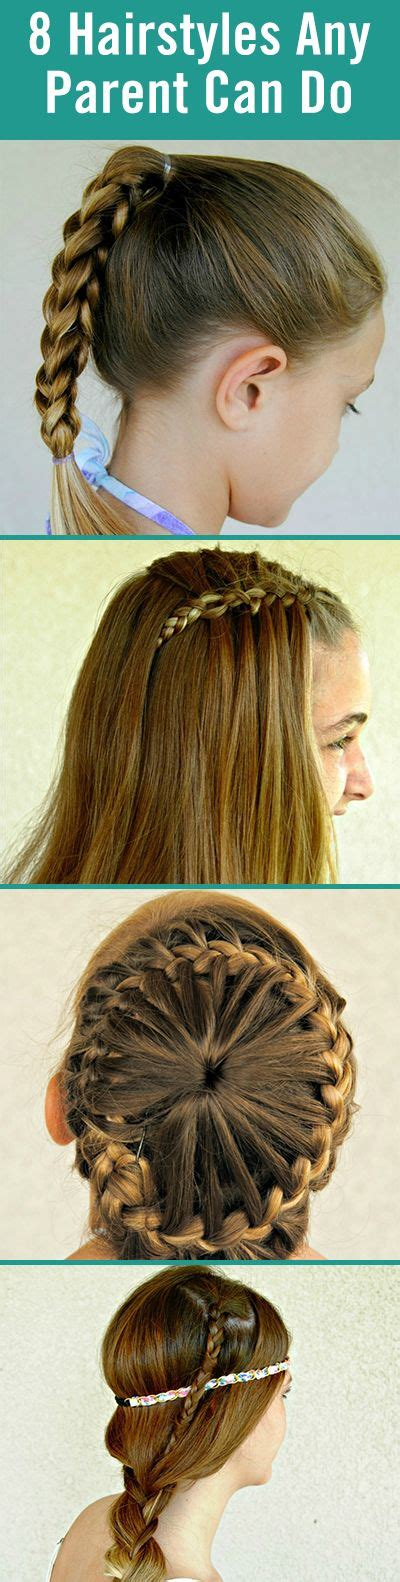 hairstyles for to do themselves 8 hairstyles any parent can do themselves